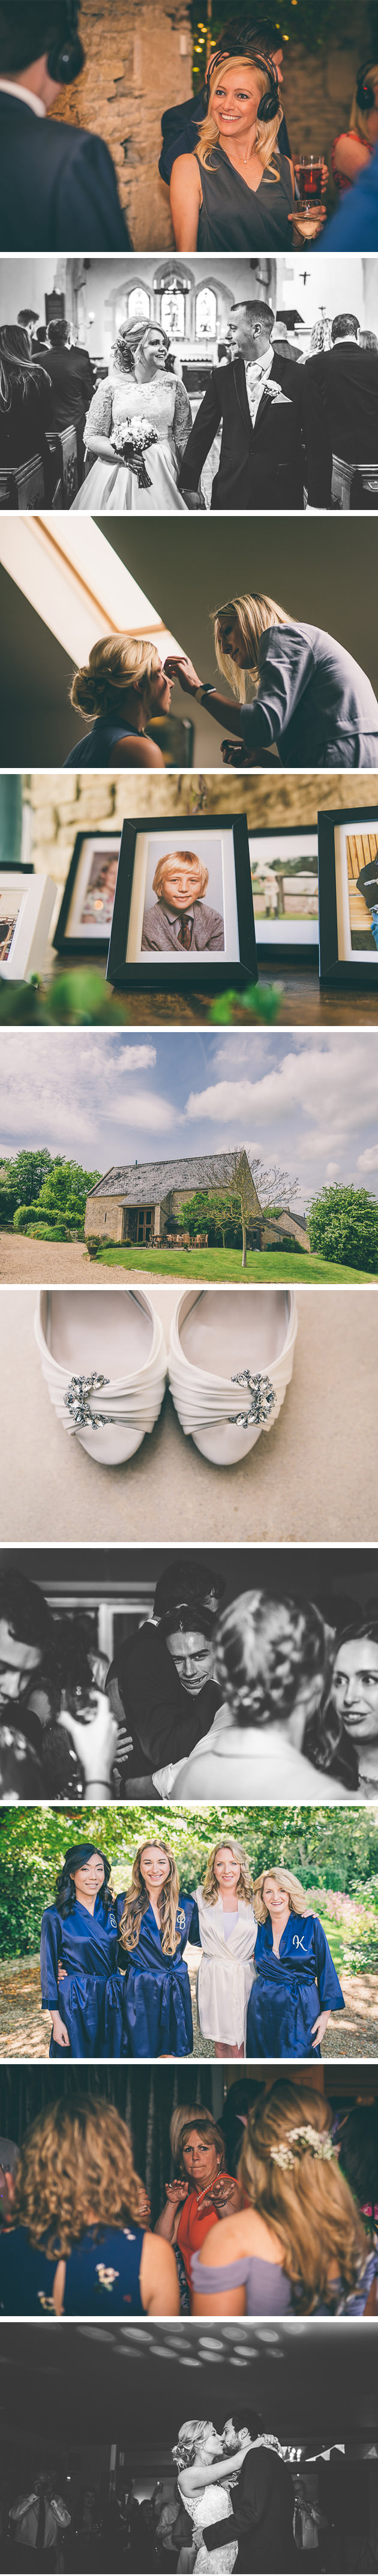 Close up photo of wedding shoes